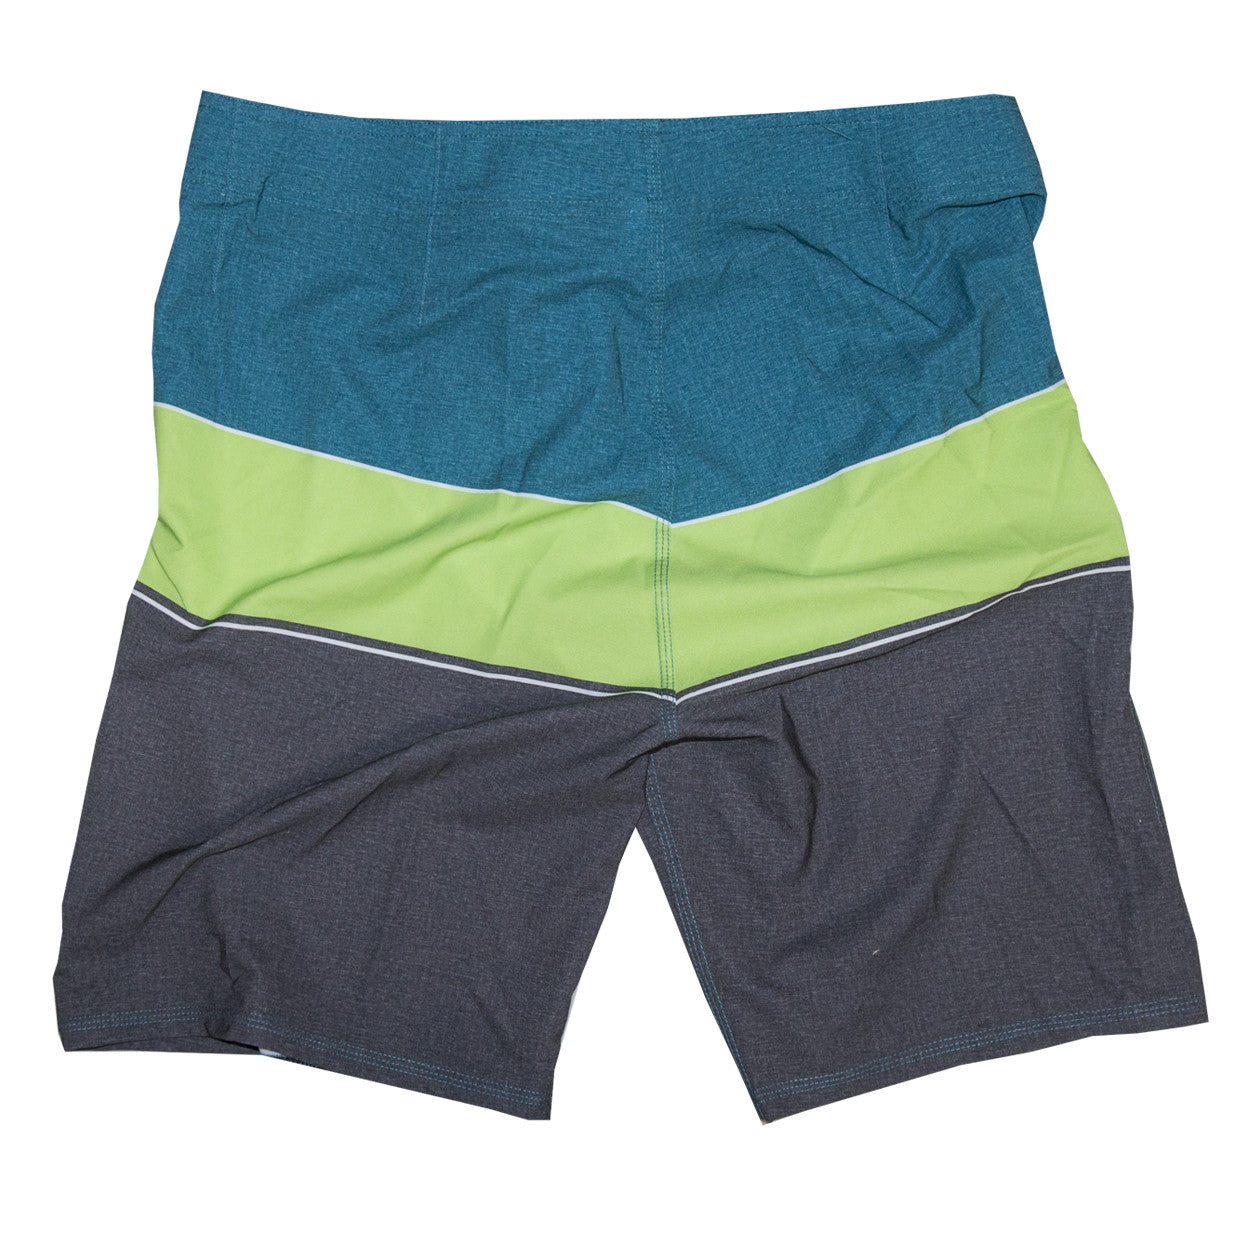 TOP SHELF BOARDSHORTS-GRN